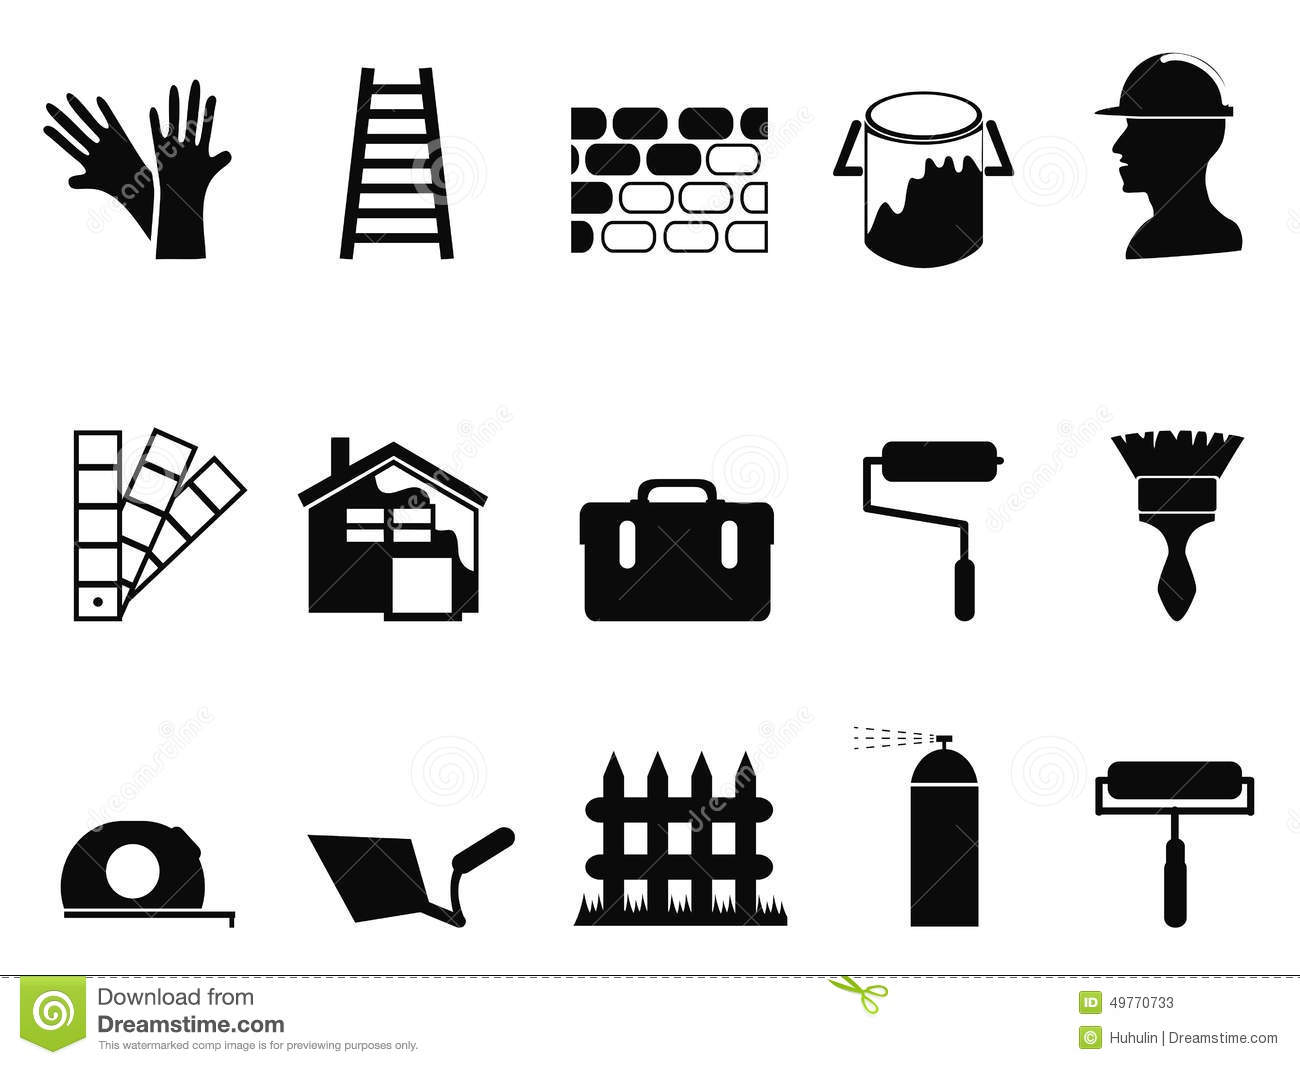 Landscaping furthermore House Clipart Black And White besides 55 Creative Construction Logo Designs For Inspiration additionally Wesp also Whats Involved In A Floor Plan Design. on home house construction